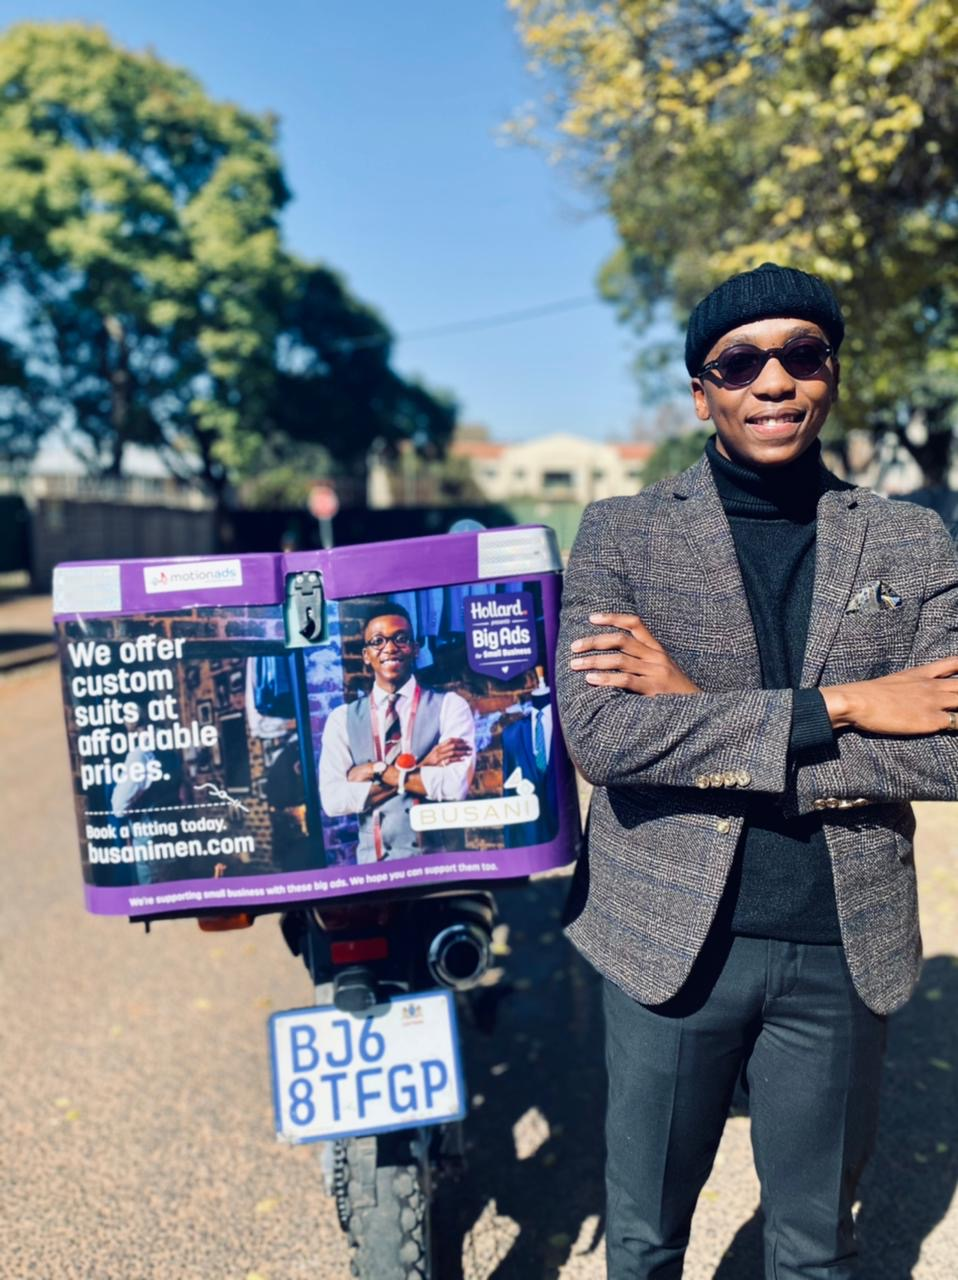 BusaniMen Gets into High Gear with Hollard's Big Ads for Small Business, and MotionAds